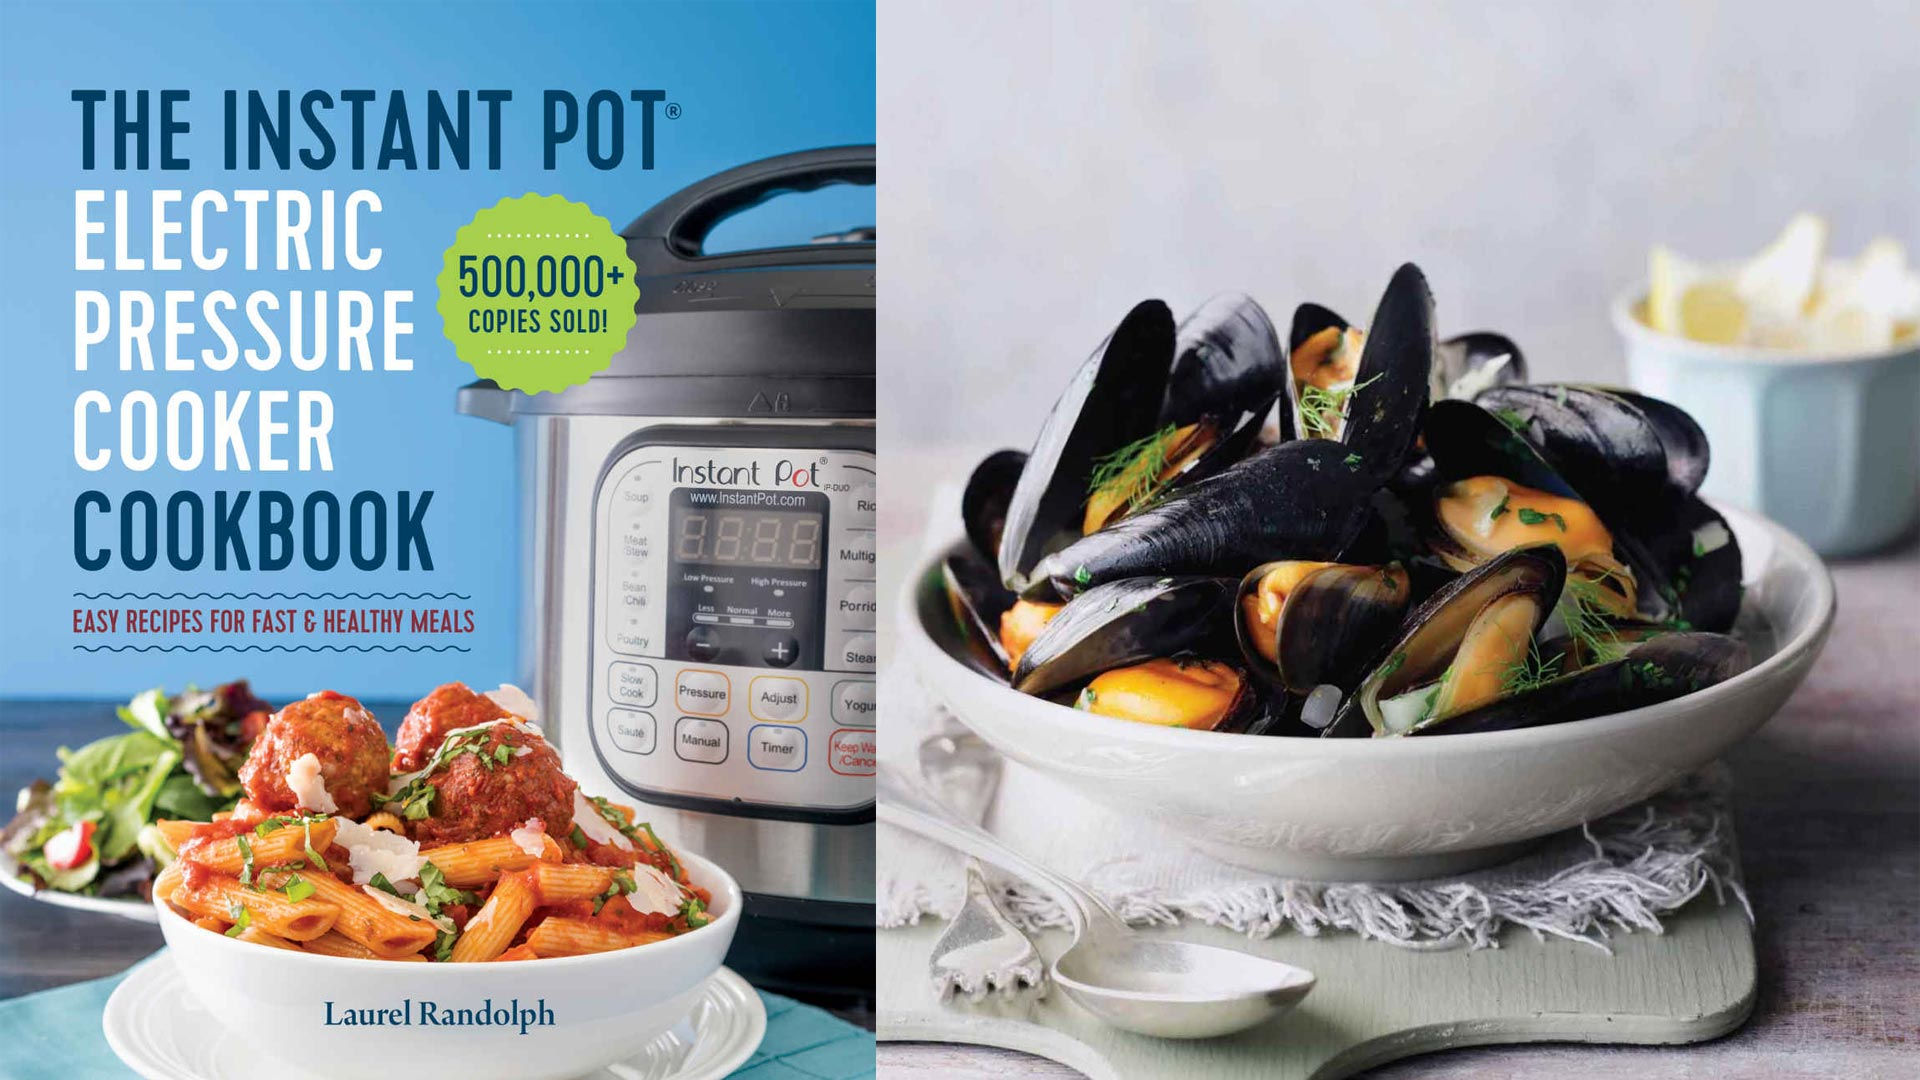 This Instant Pot cookbook has over 100 recipes and is just $1 for the Kindle Edition